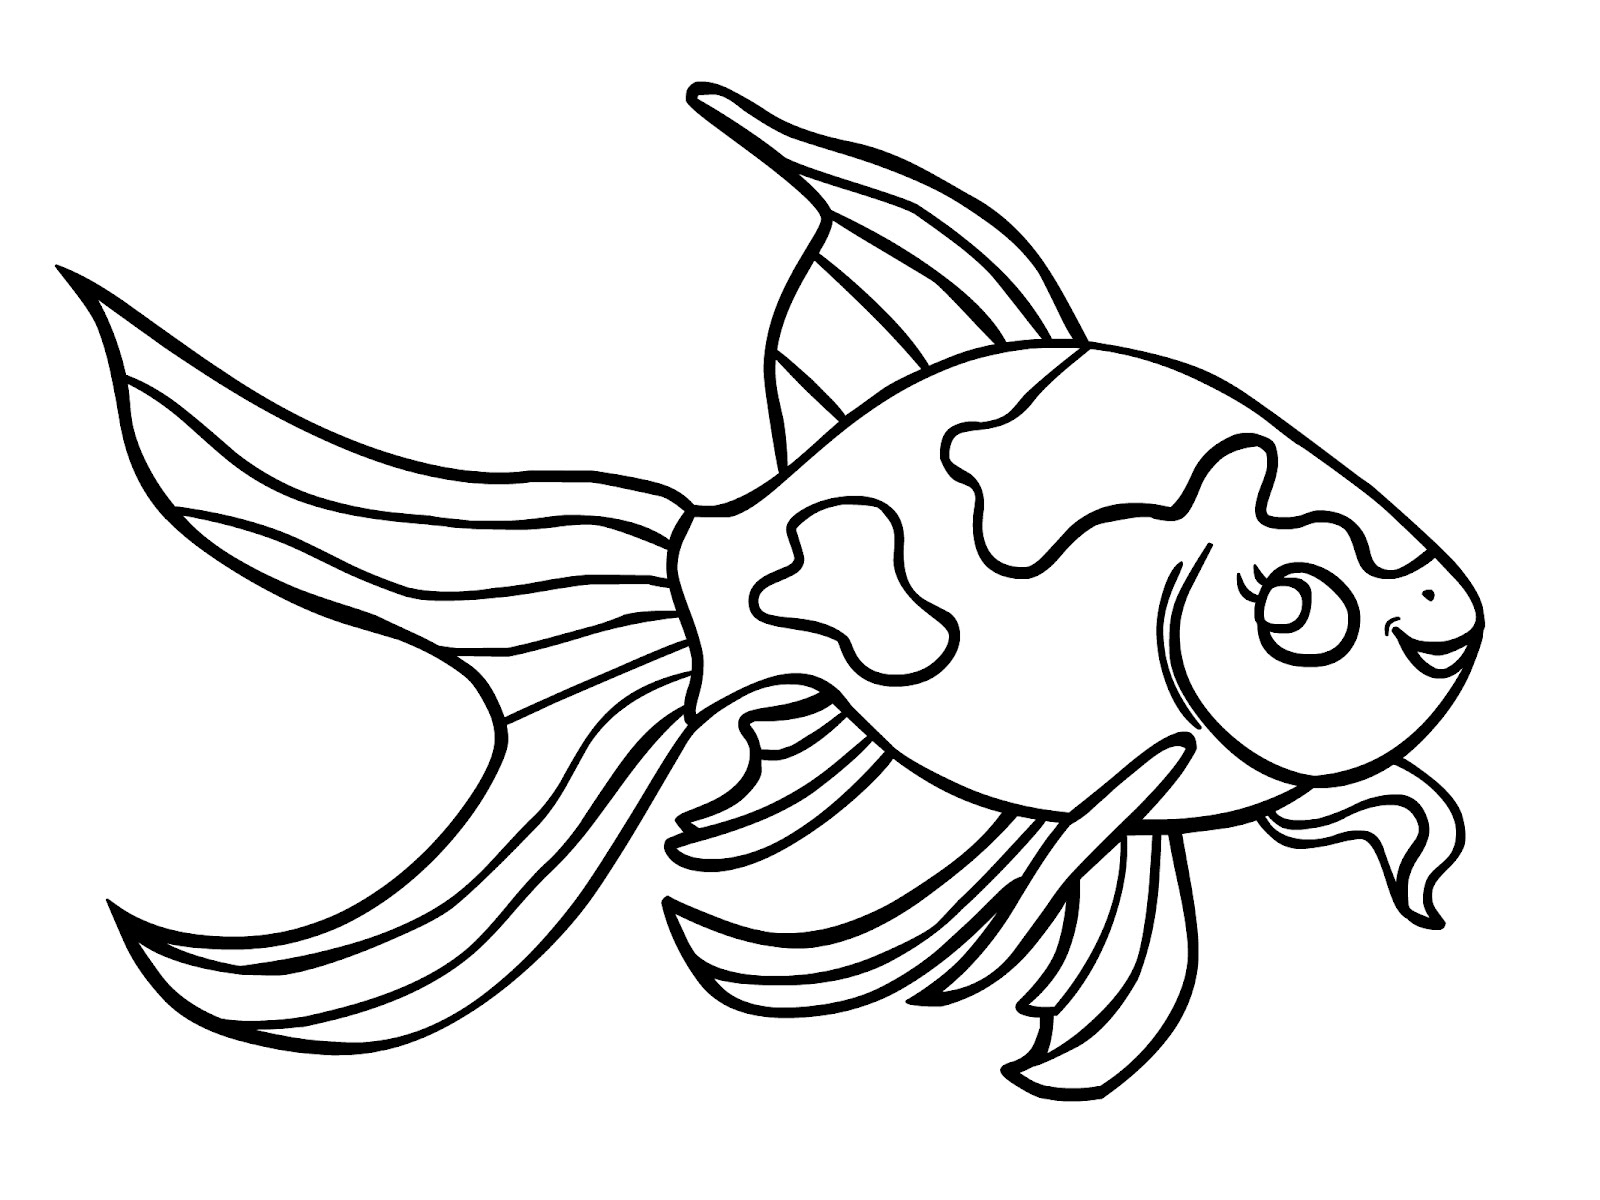 Free coloring pages fish - Free Goldfish Coloring Pages